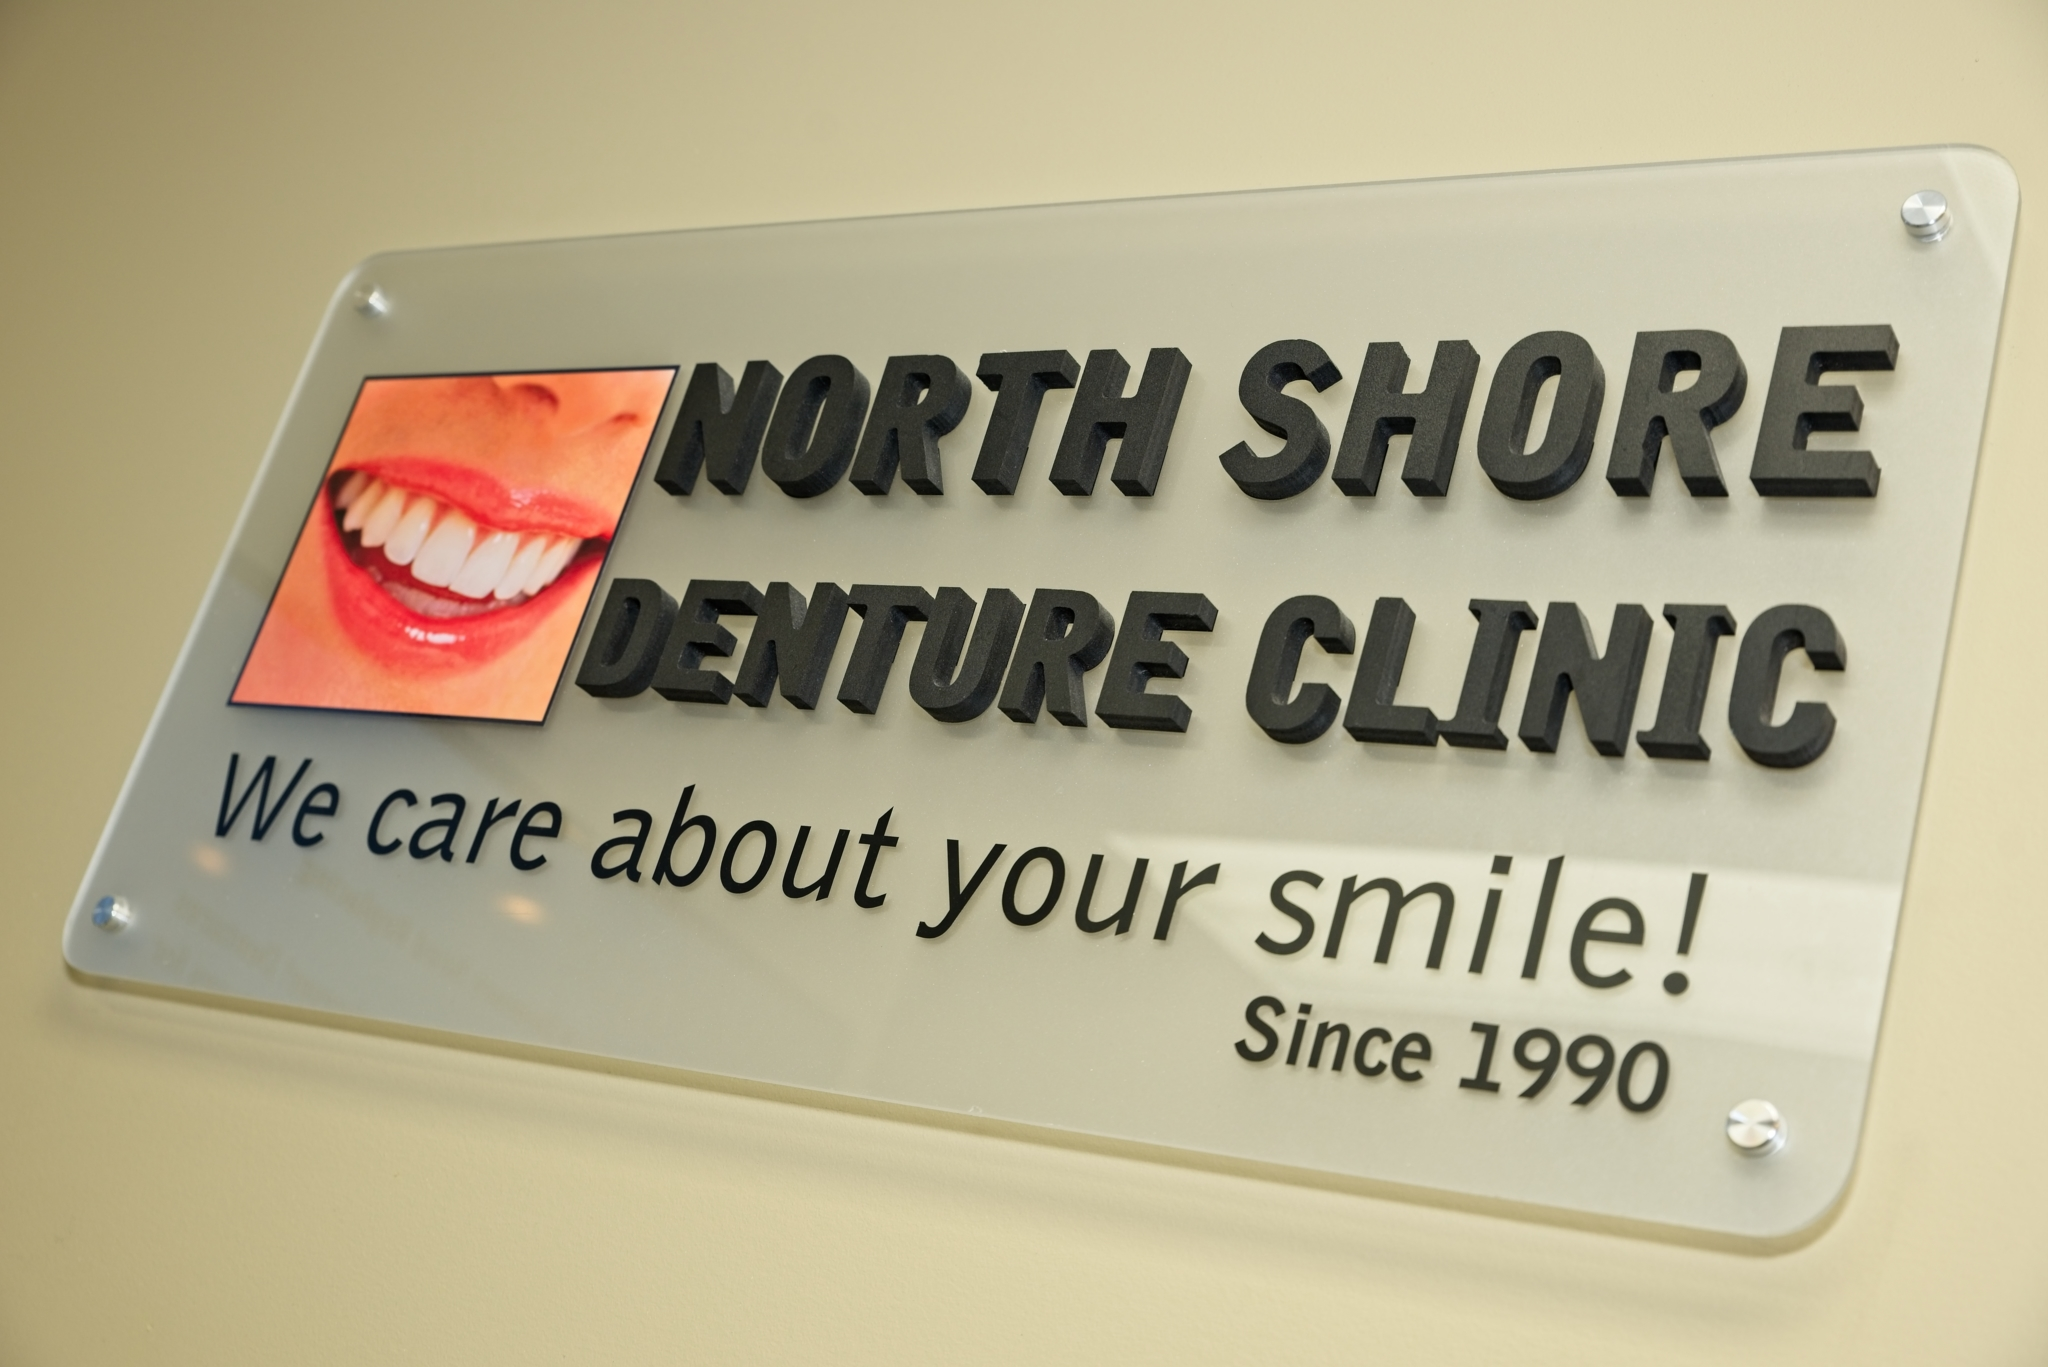 Northshore Denture Clinic in North Vancouver